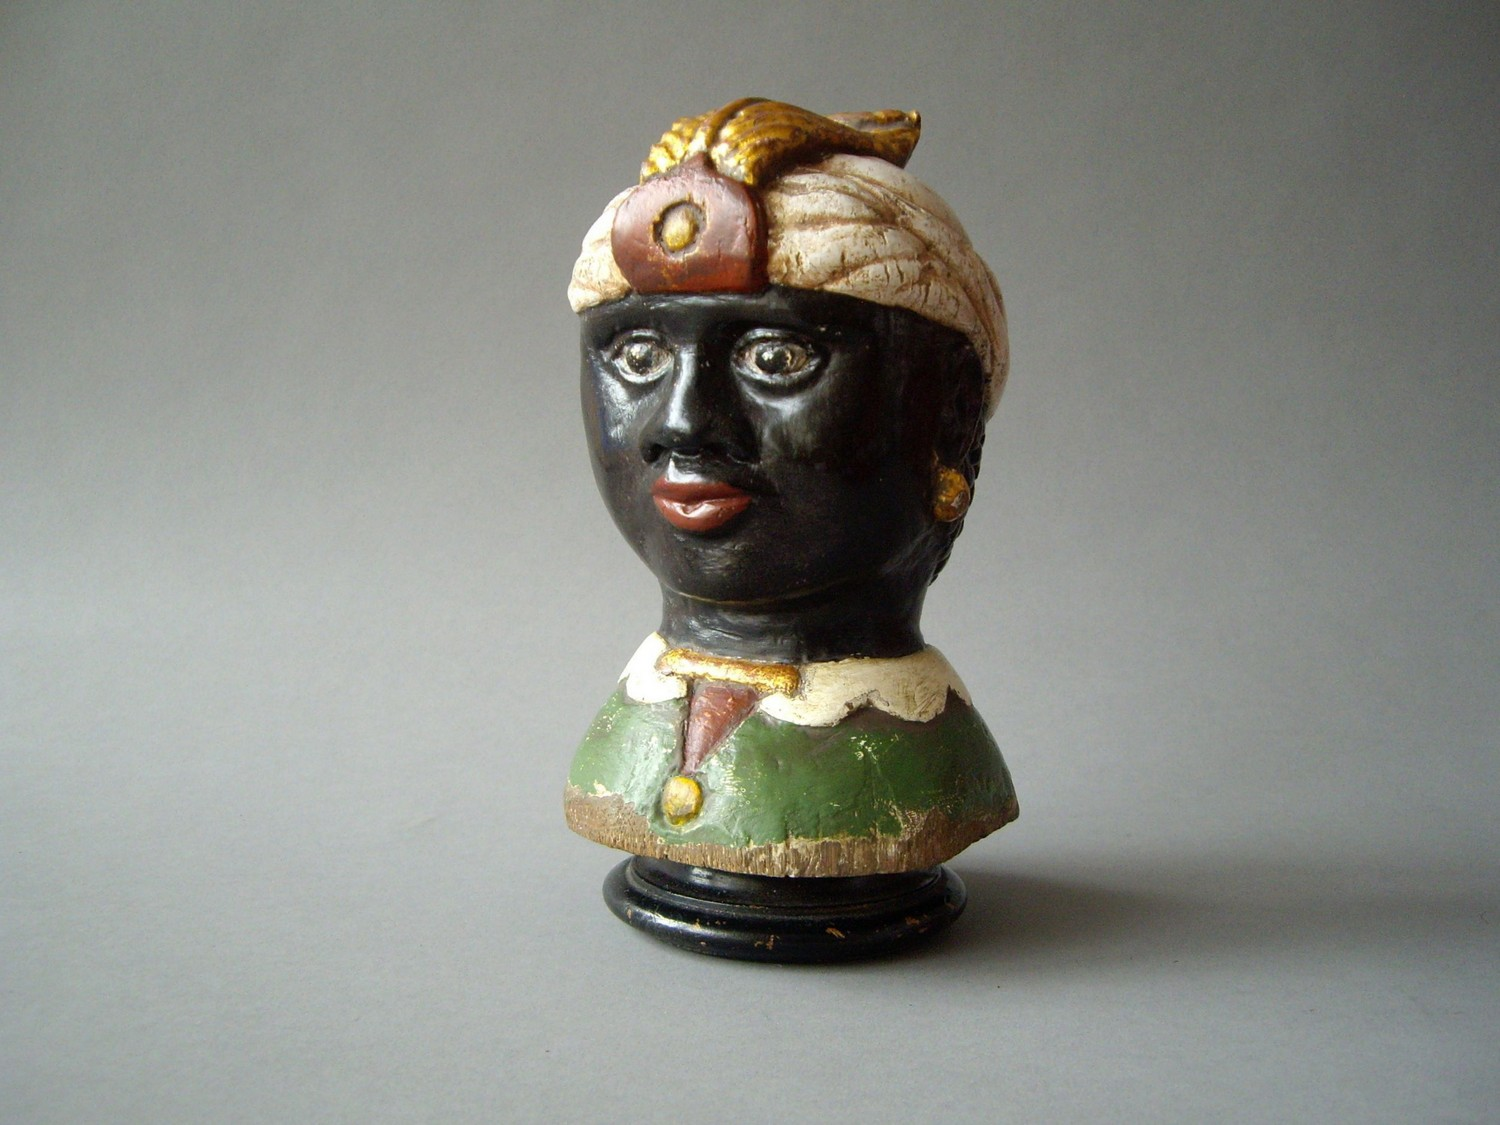 A MOOR'S TILLER HEAD 18TH CENTURY